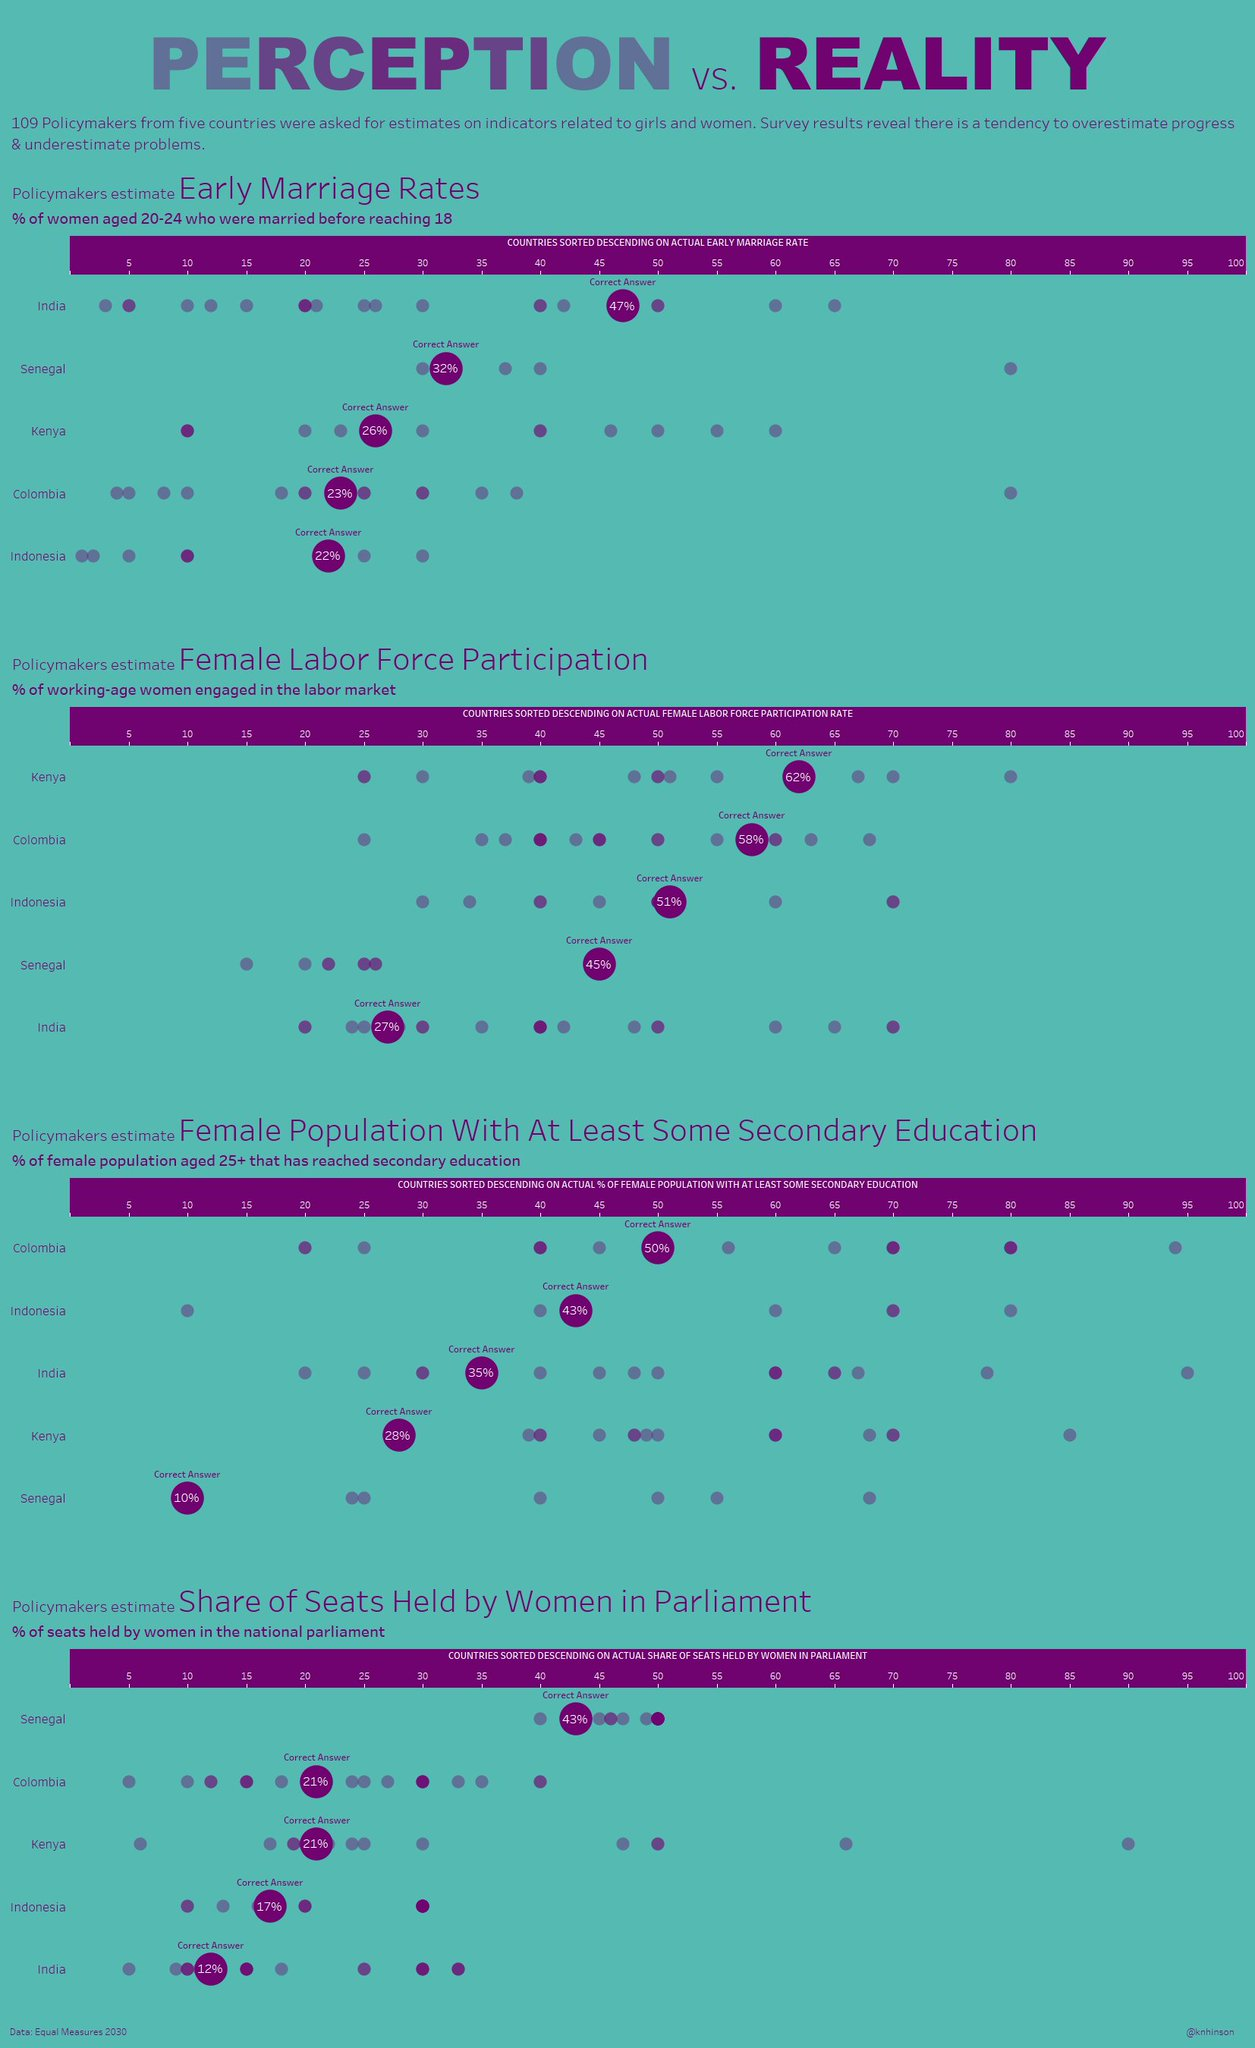 makeovermonday/w102018-what-policymakers-know-about-women